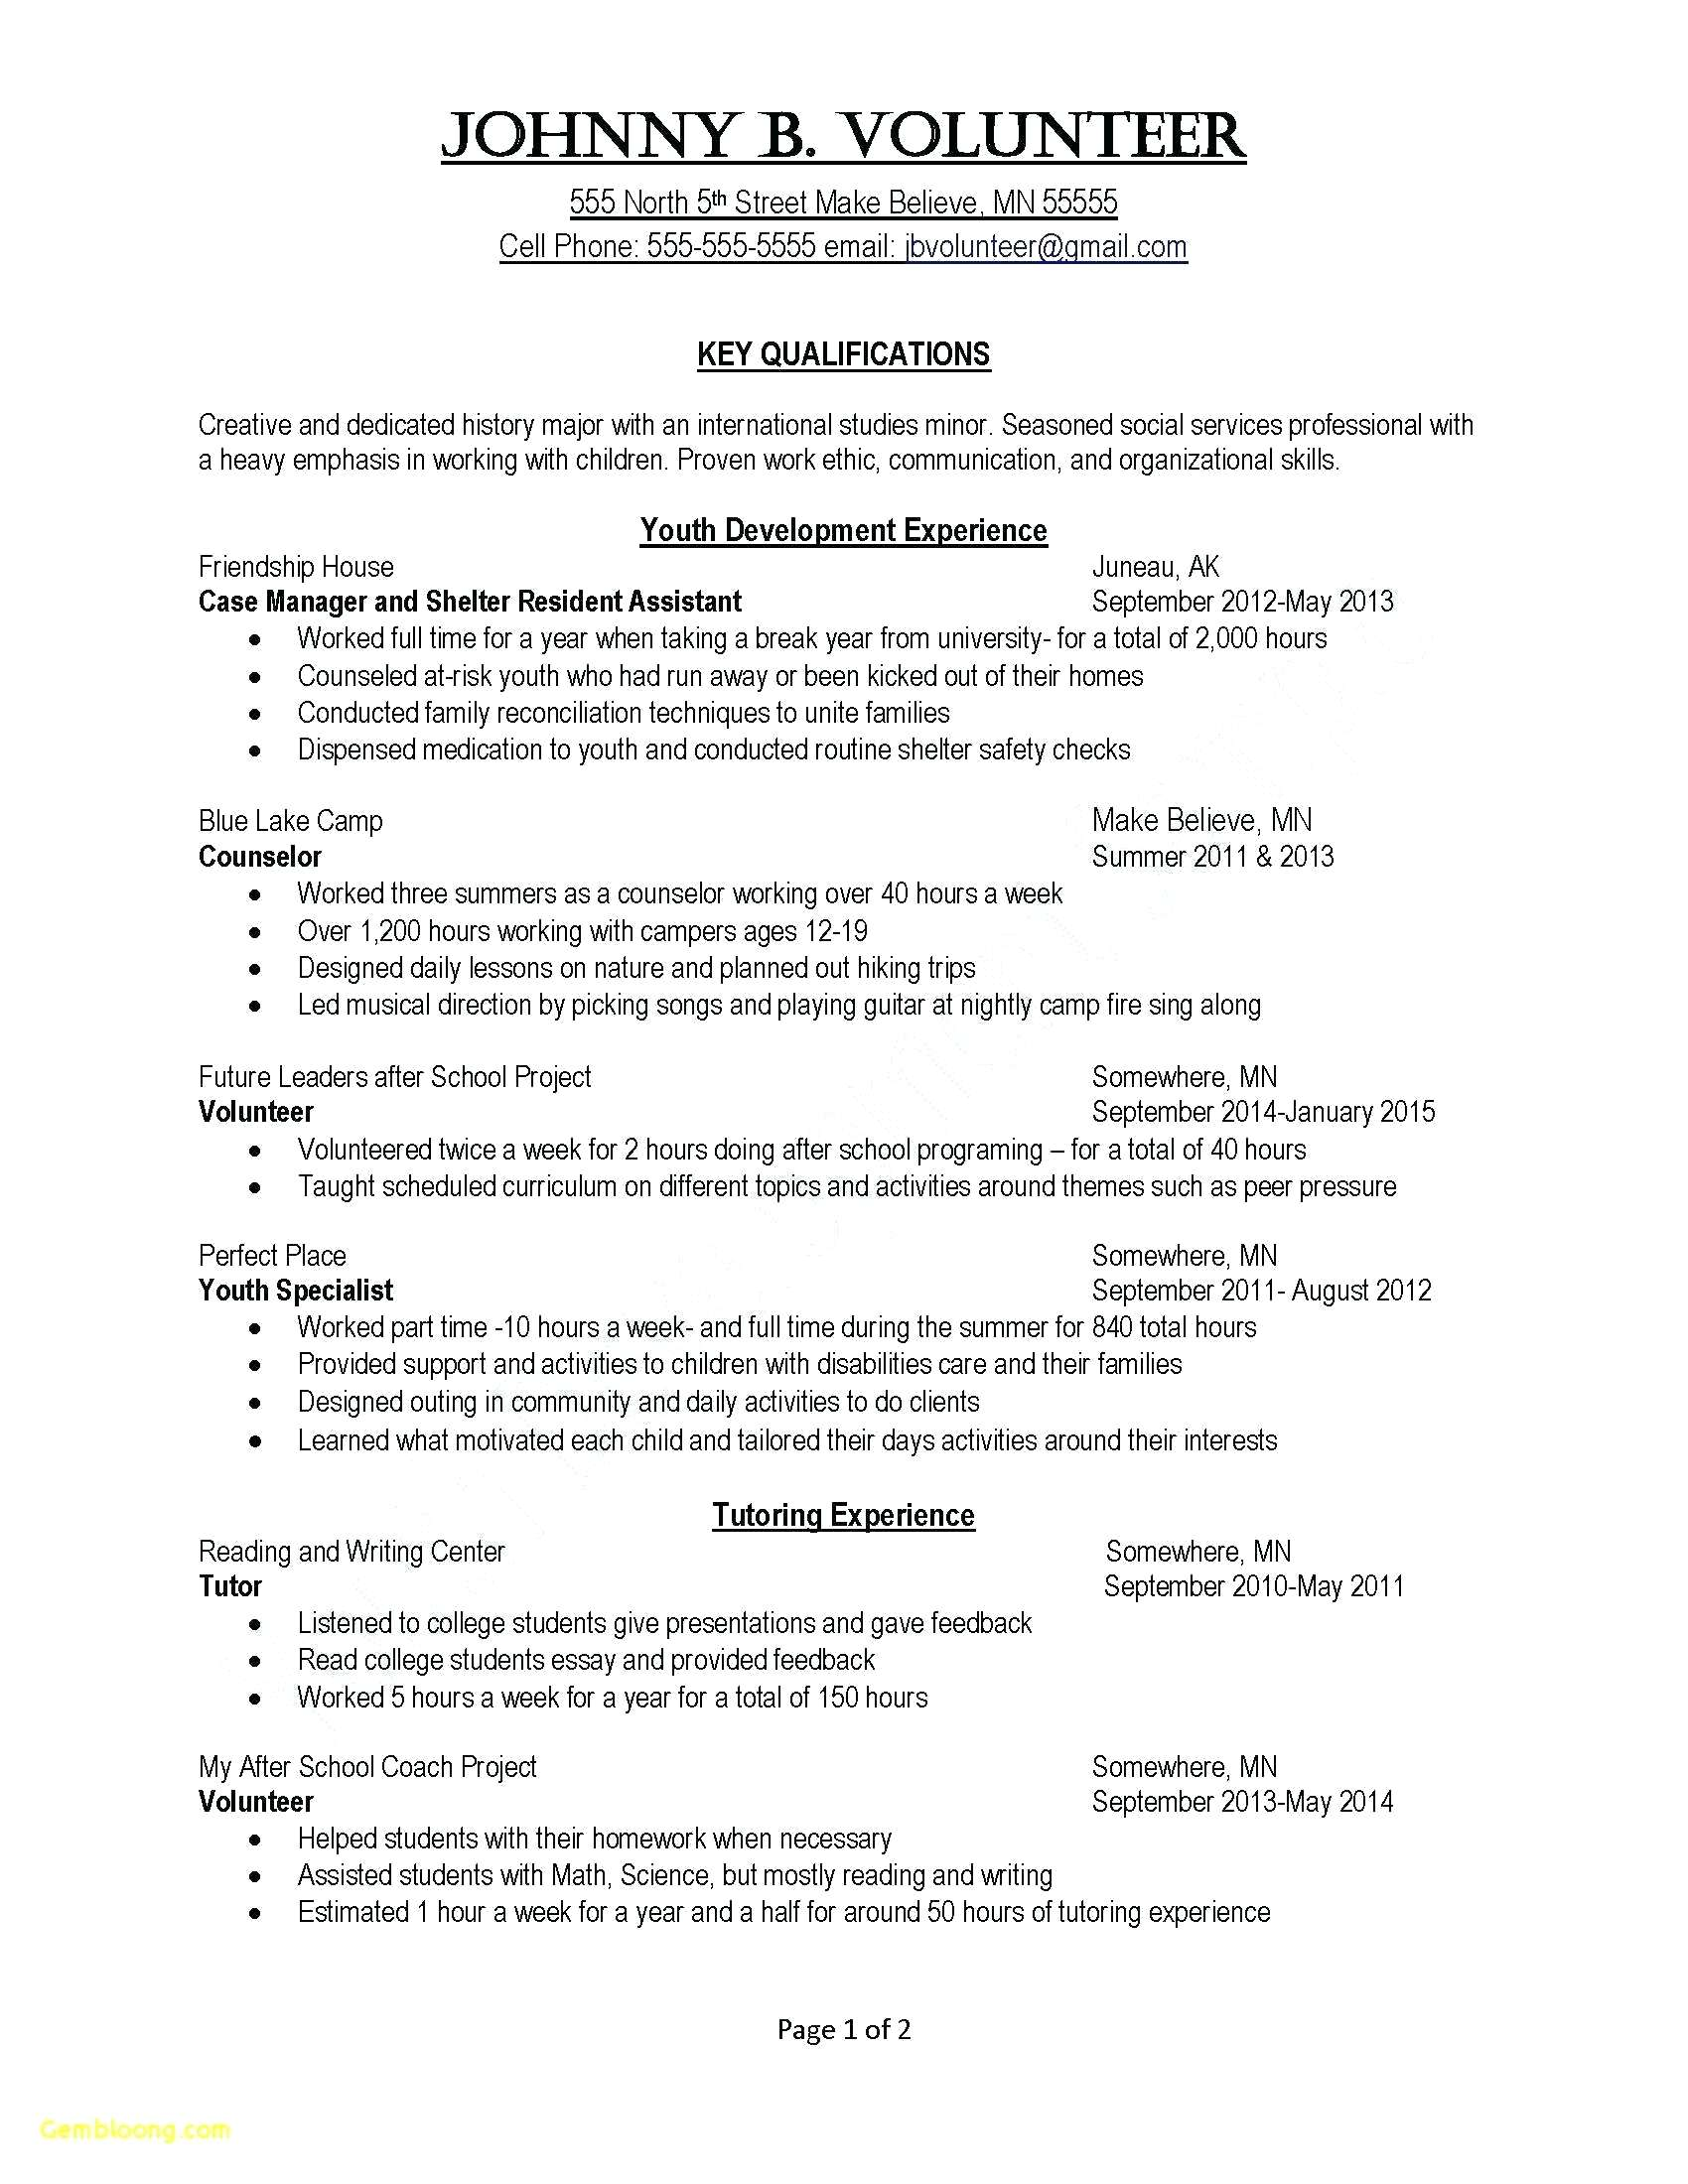 How To Type A Resume Entry Level Flight Attendant Resume Unique Writing A Job Cover Letter Sample Application Letters Social Worker Samples Free Template Word Reddit Attend 1 how to type a resume|wikiresume.com